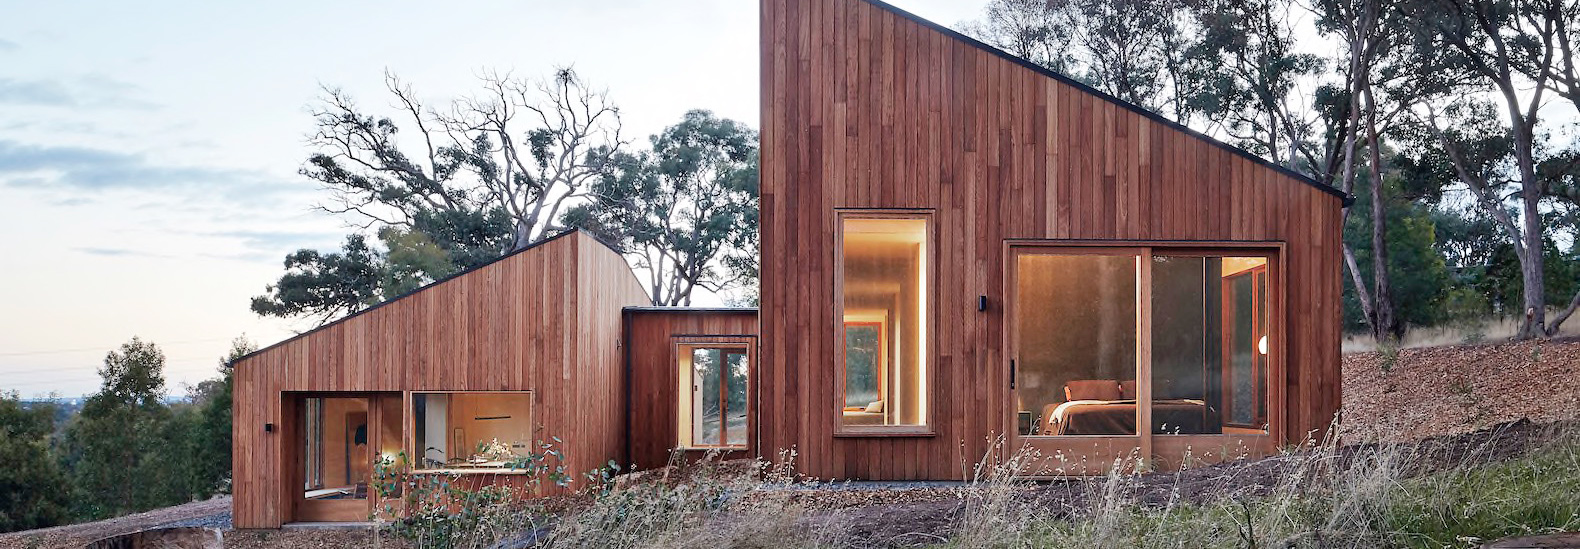 Cozy Timber Home Embraces The Australian Bush With A Split Form